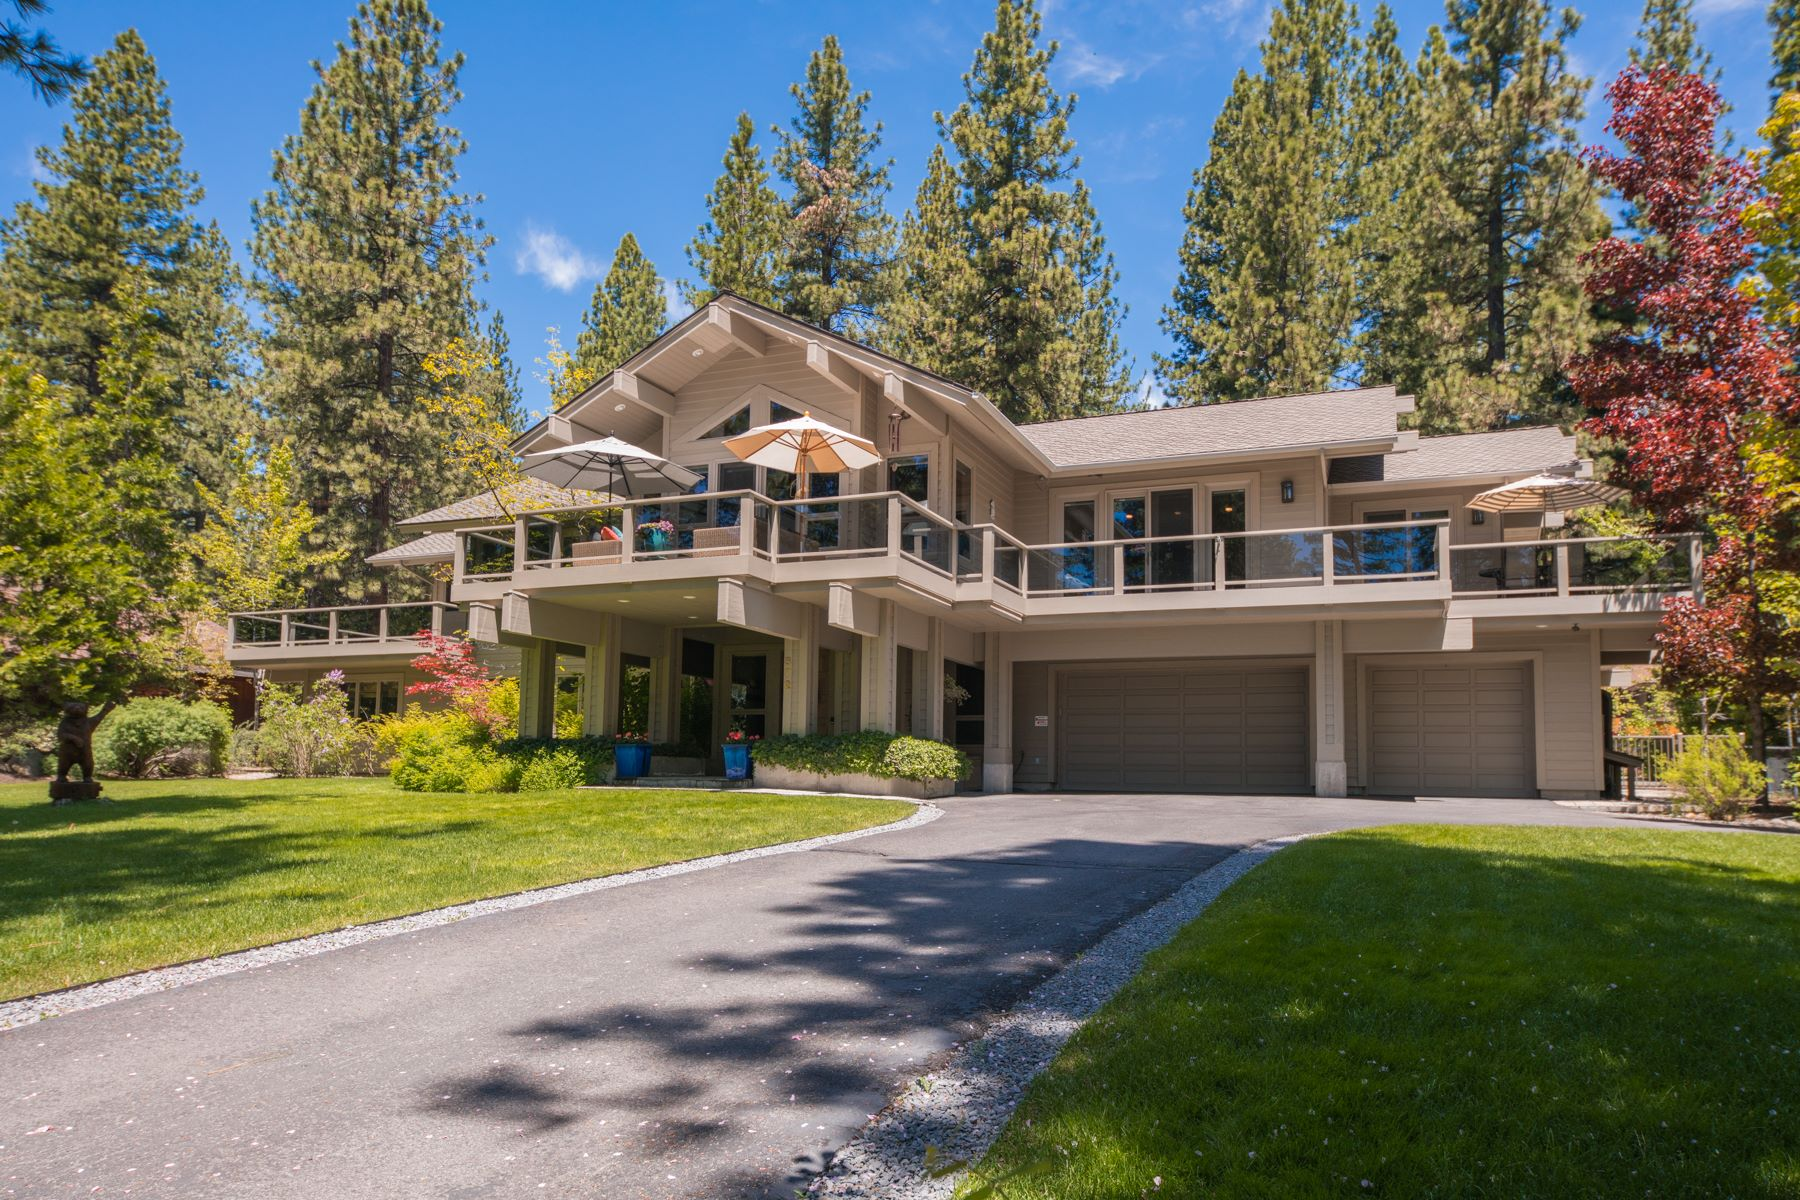 single family homes for Active at 872 Lakeshore Blvd., Incline Village, Nevada 872 Lakeshore Blvd. Incline Village, Nevada 89451 United States